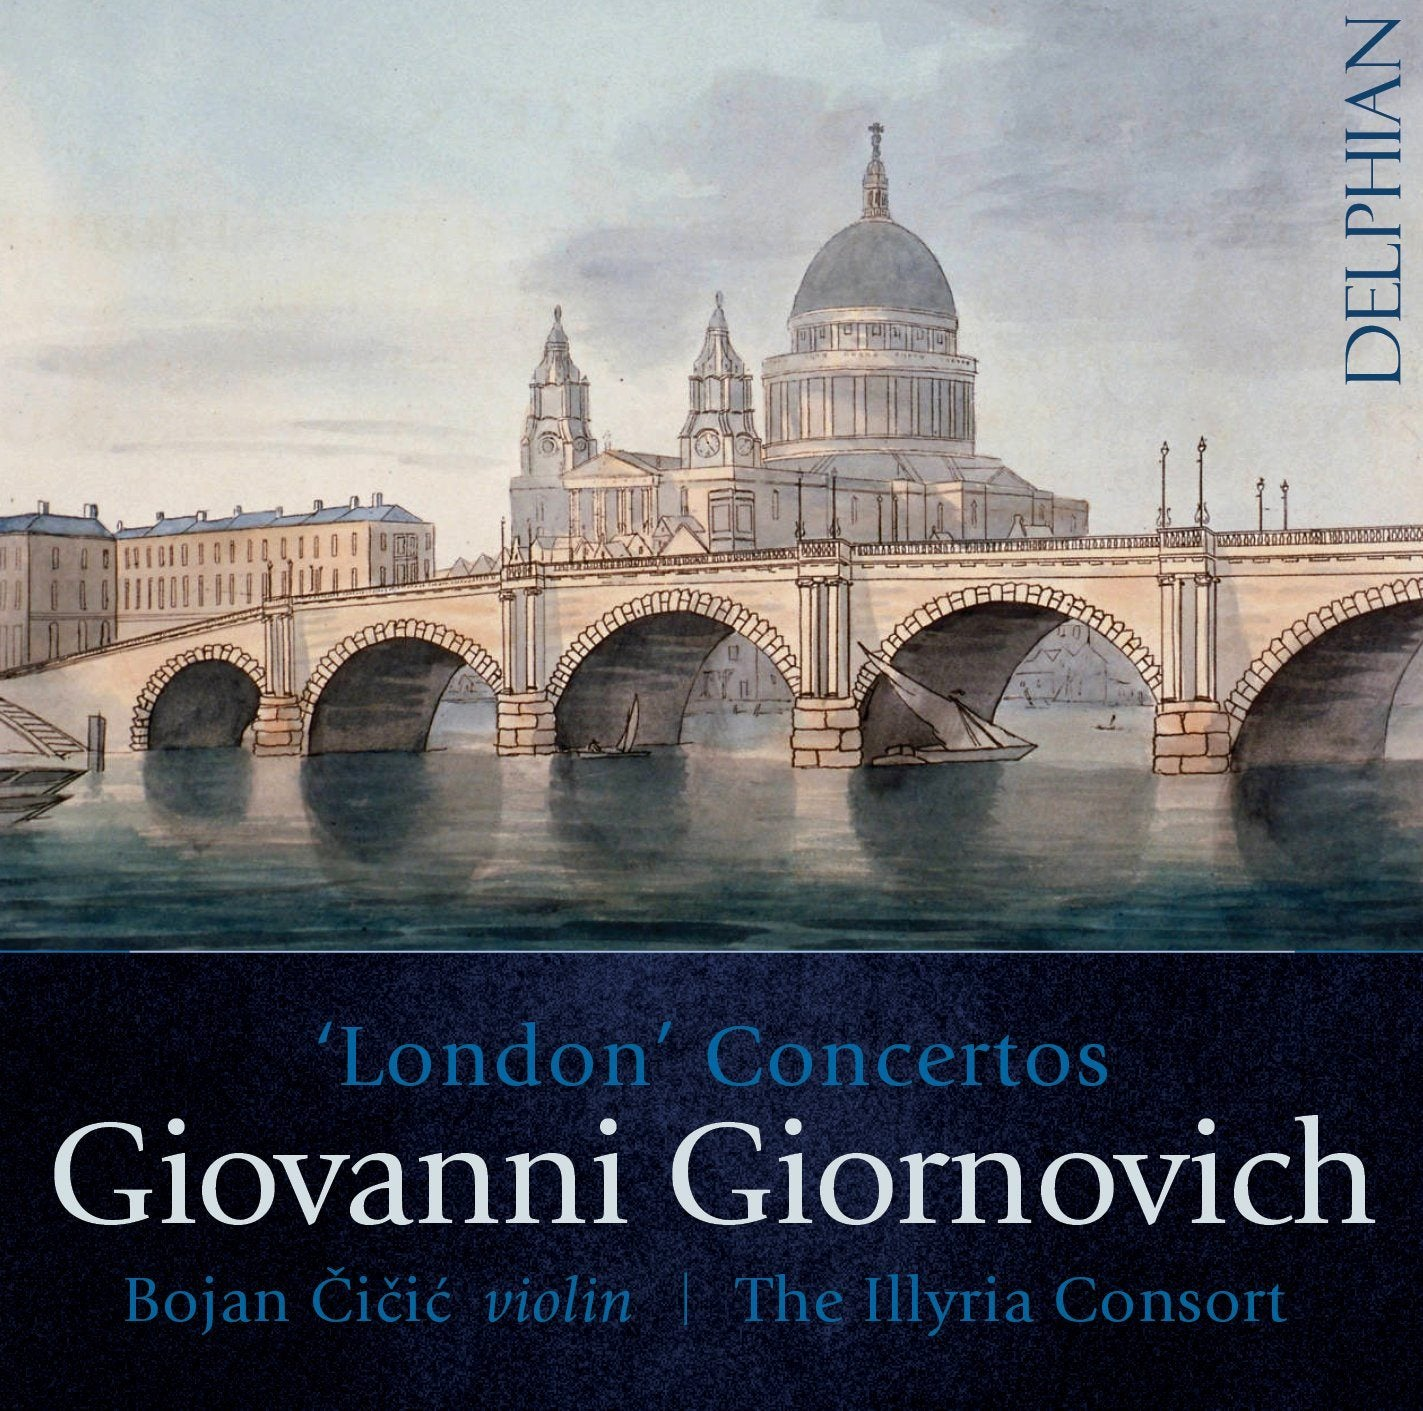 Giovanni Giornovich 'London Concertos' CD Delphian Records